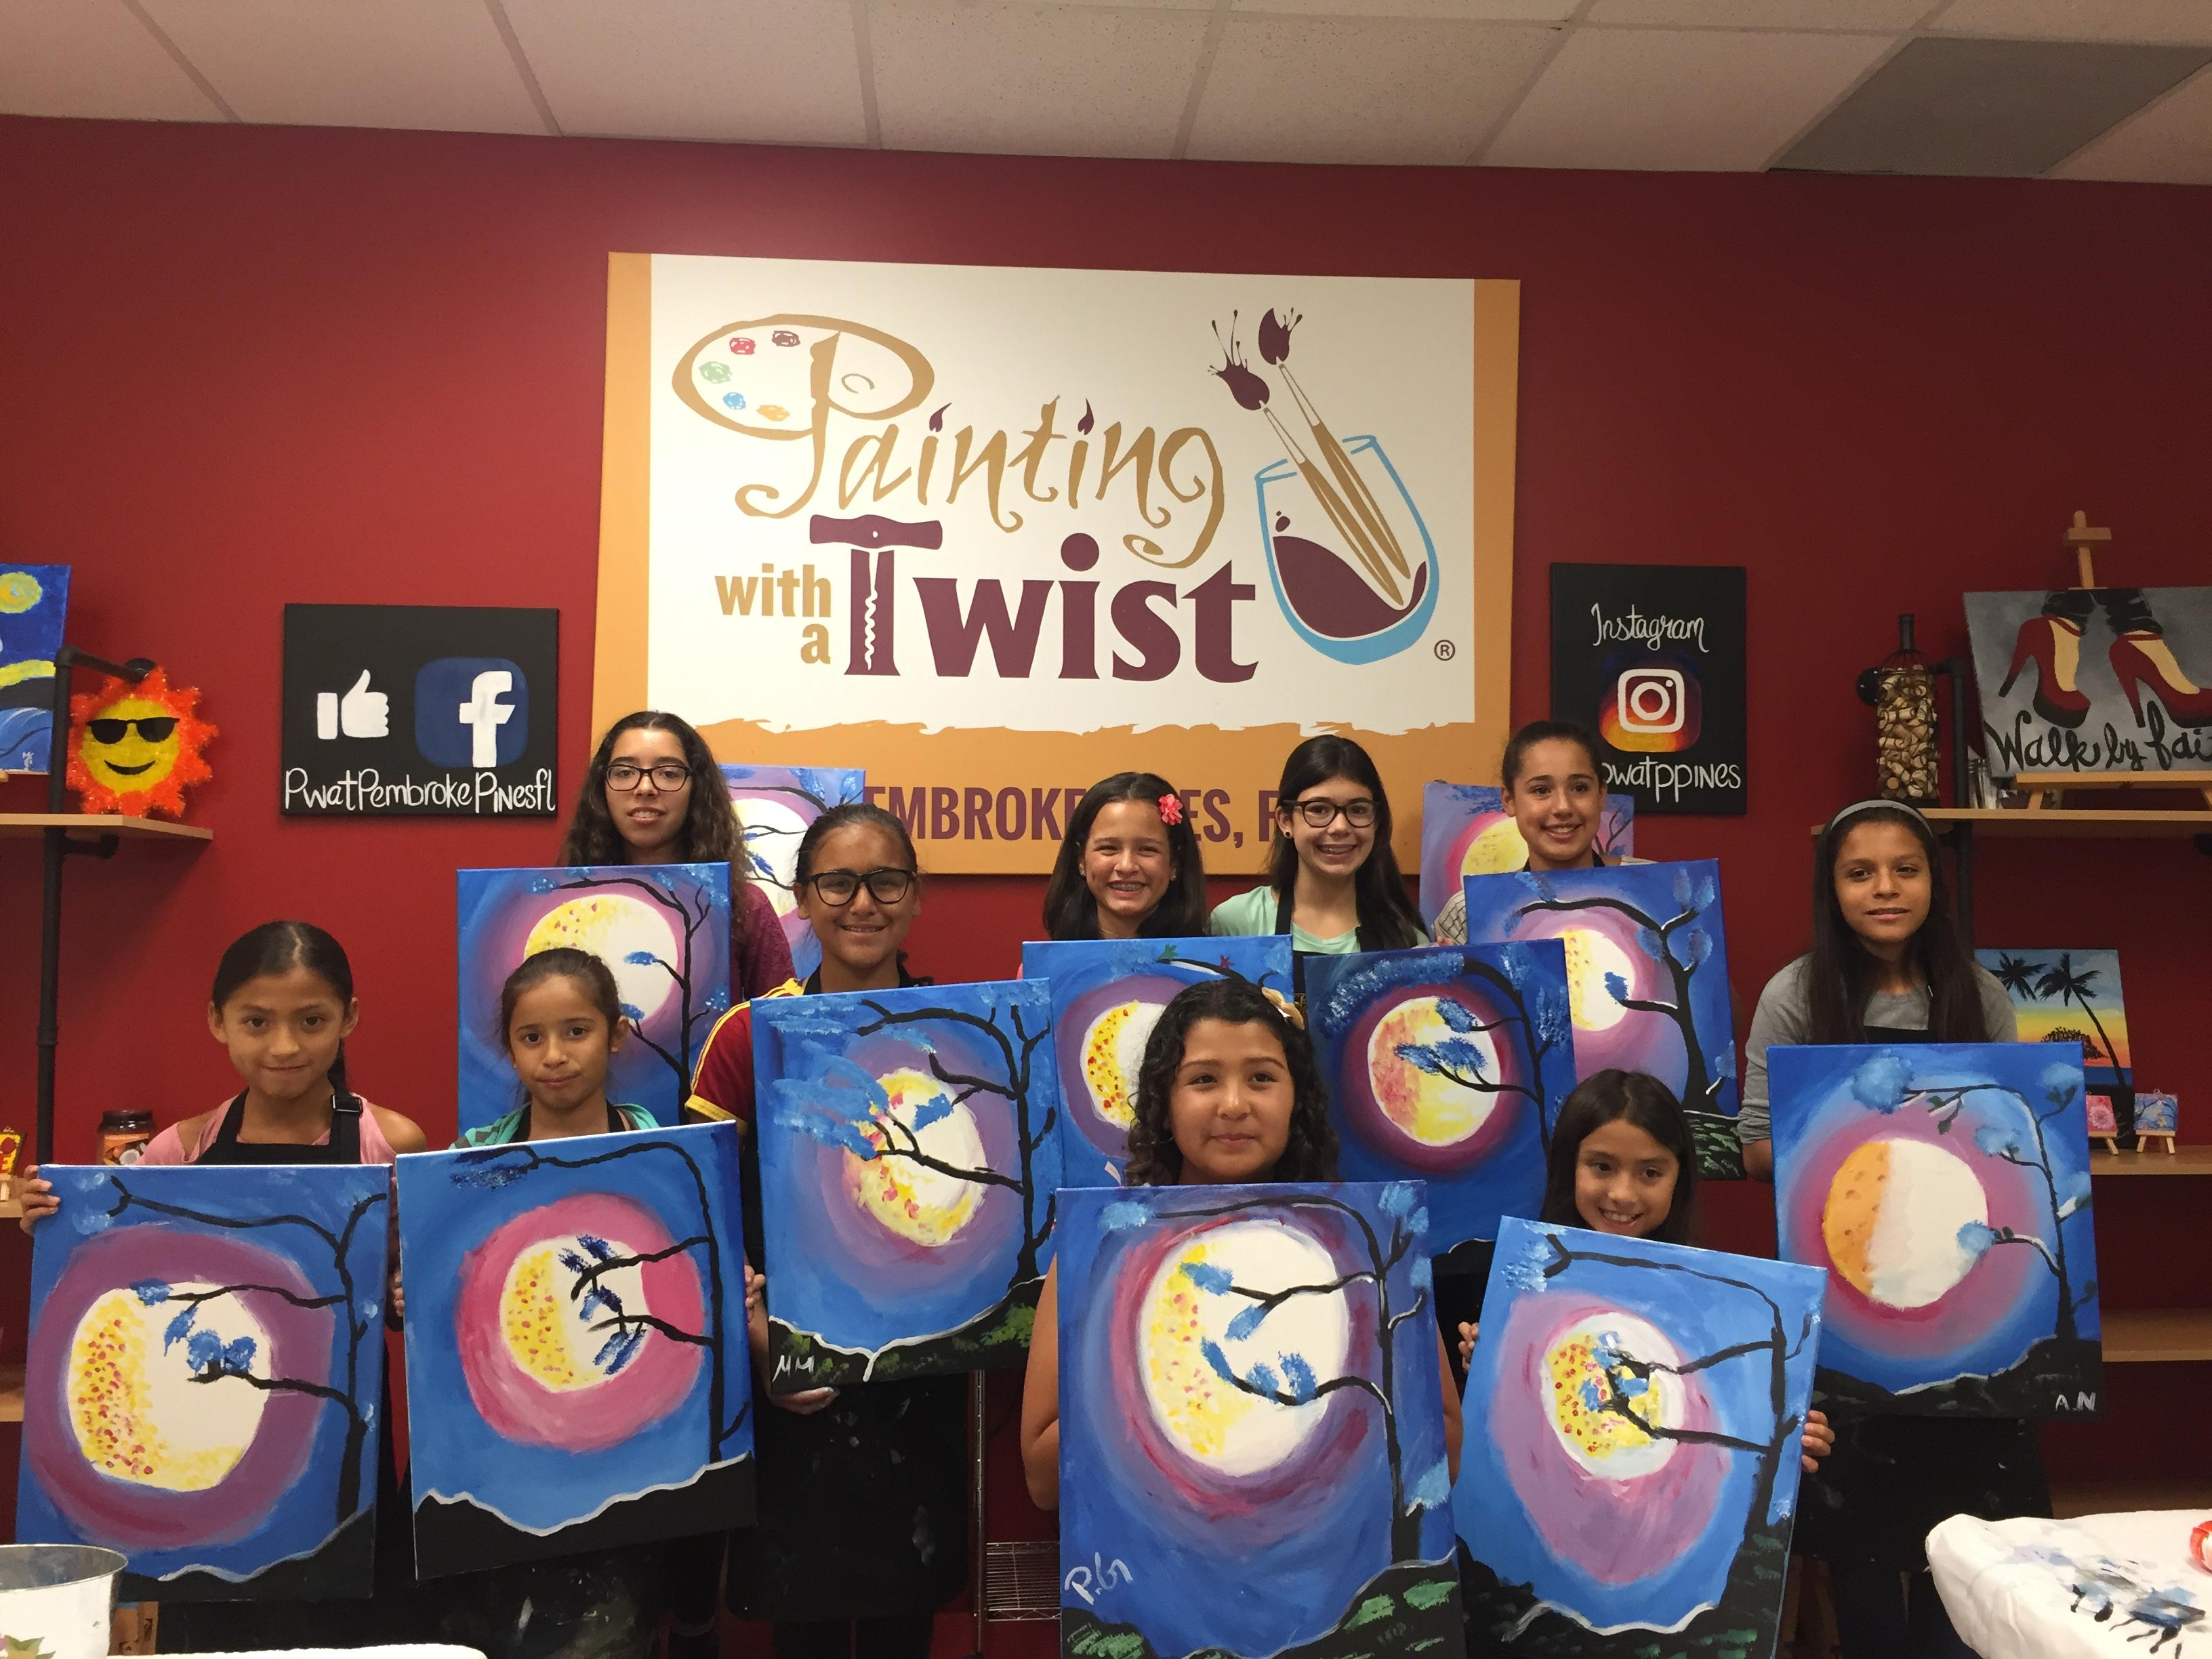 painting with a twist in pembroke pines fl 33028